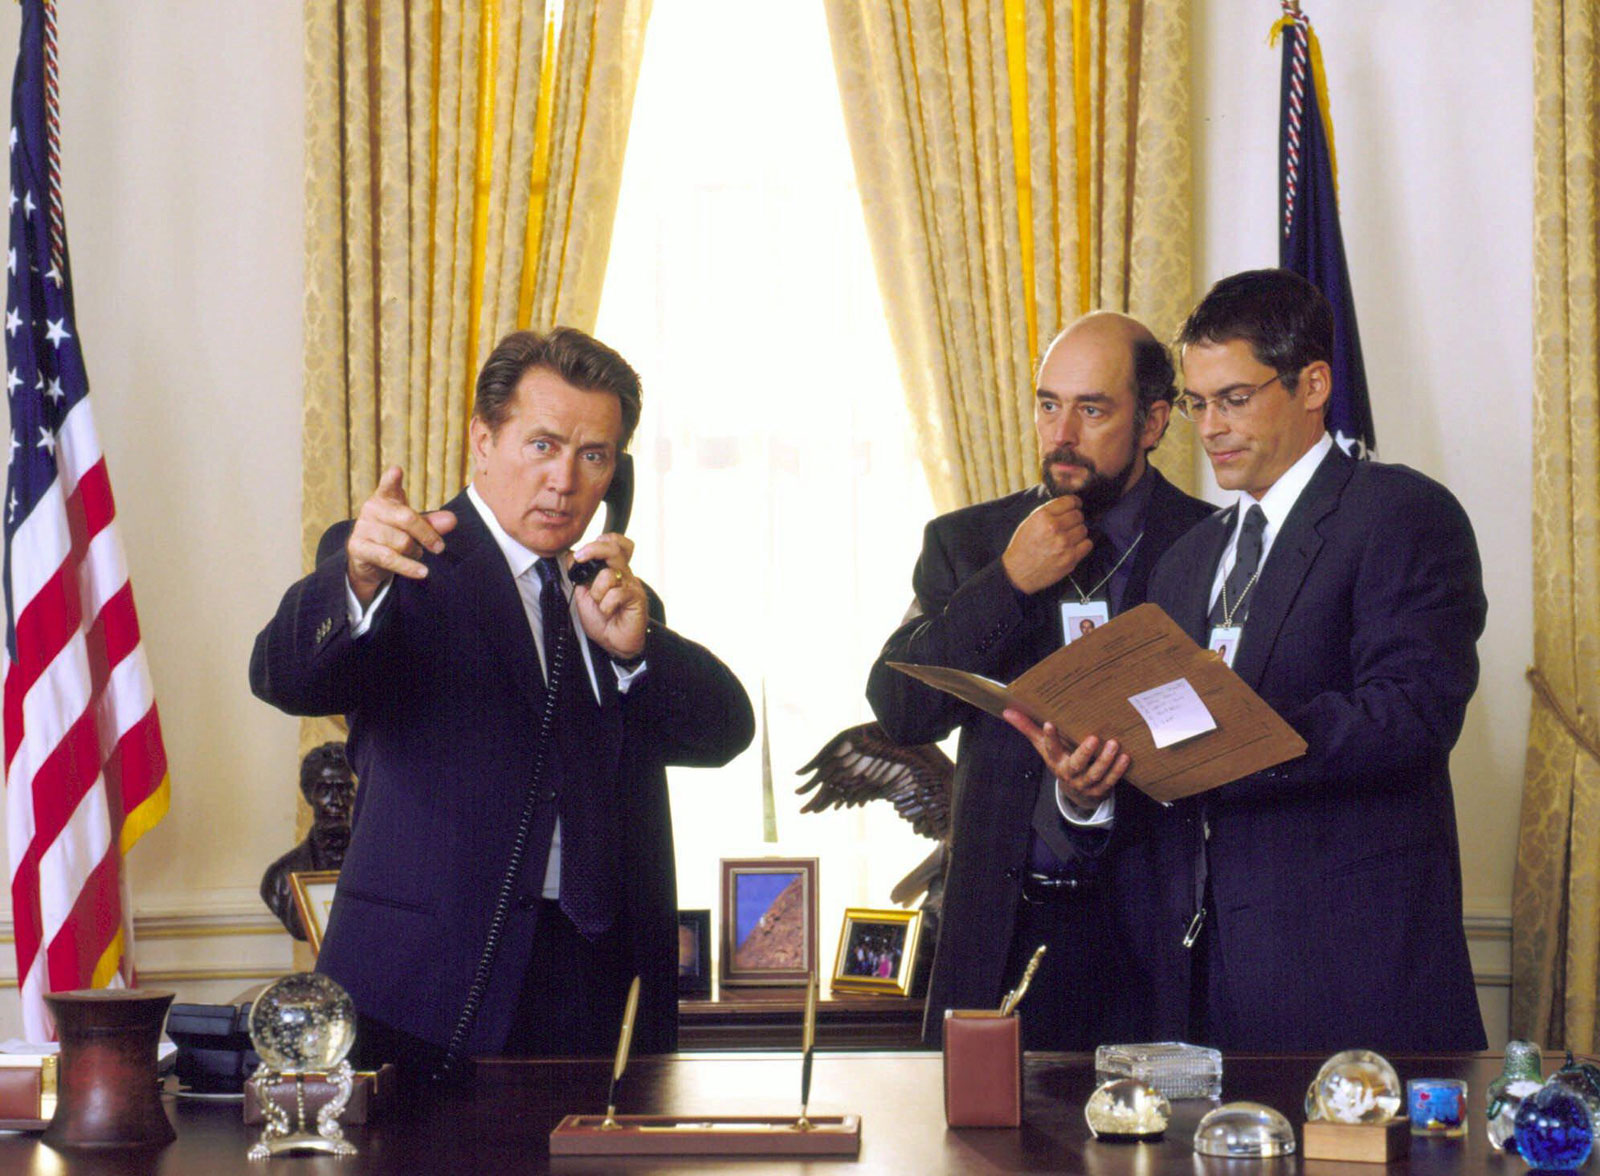 The West Wing Cast to Reunite for HBO Max Special | Den of ...